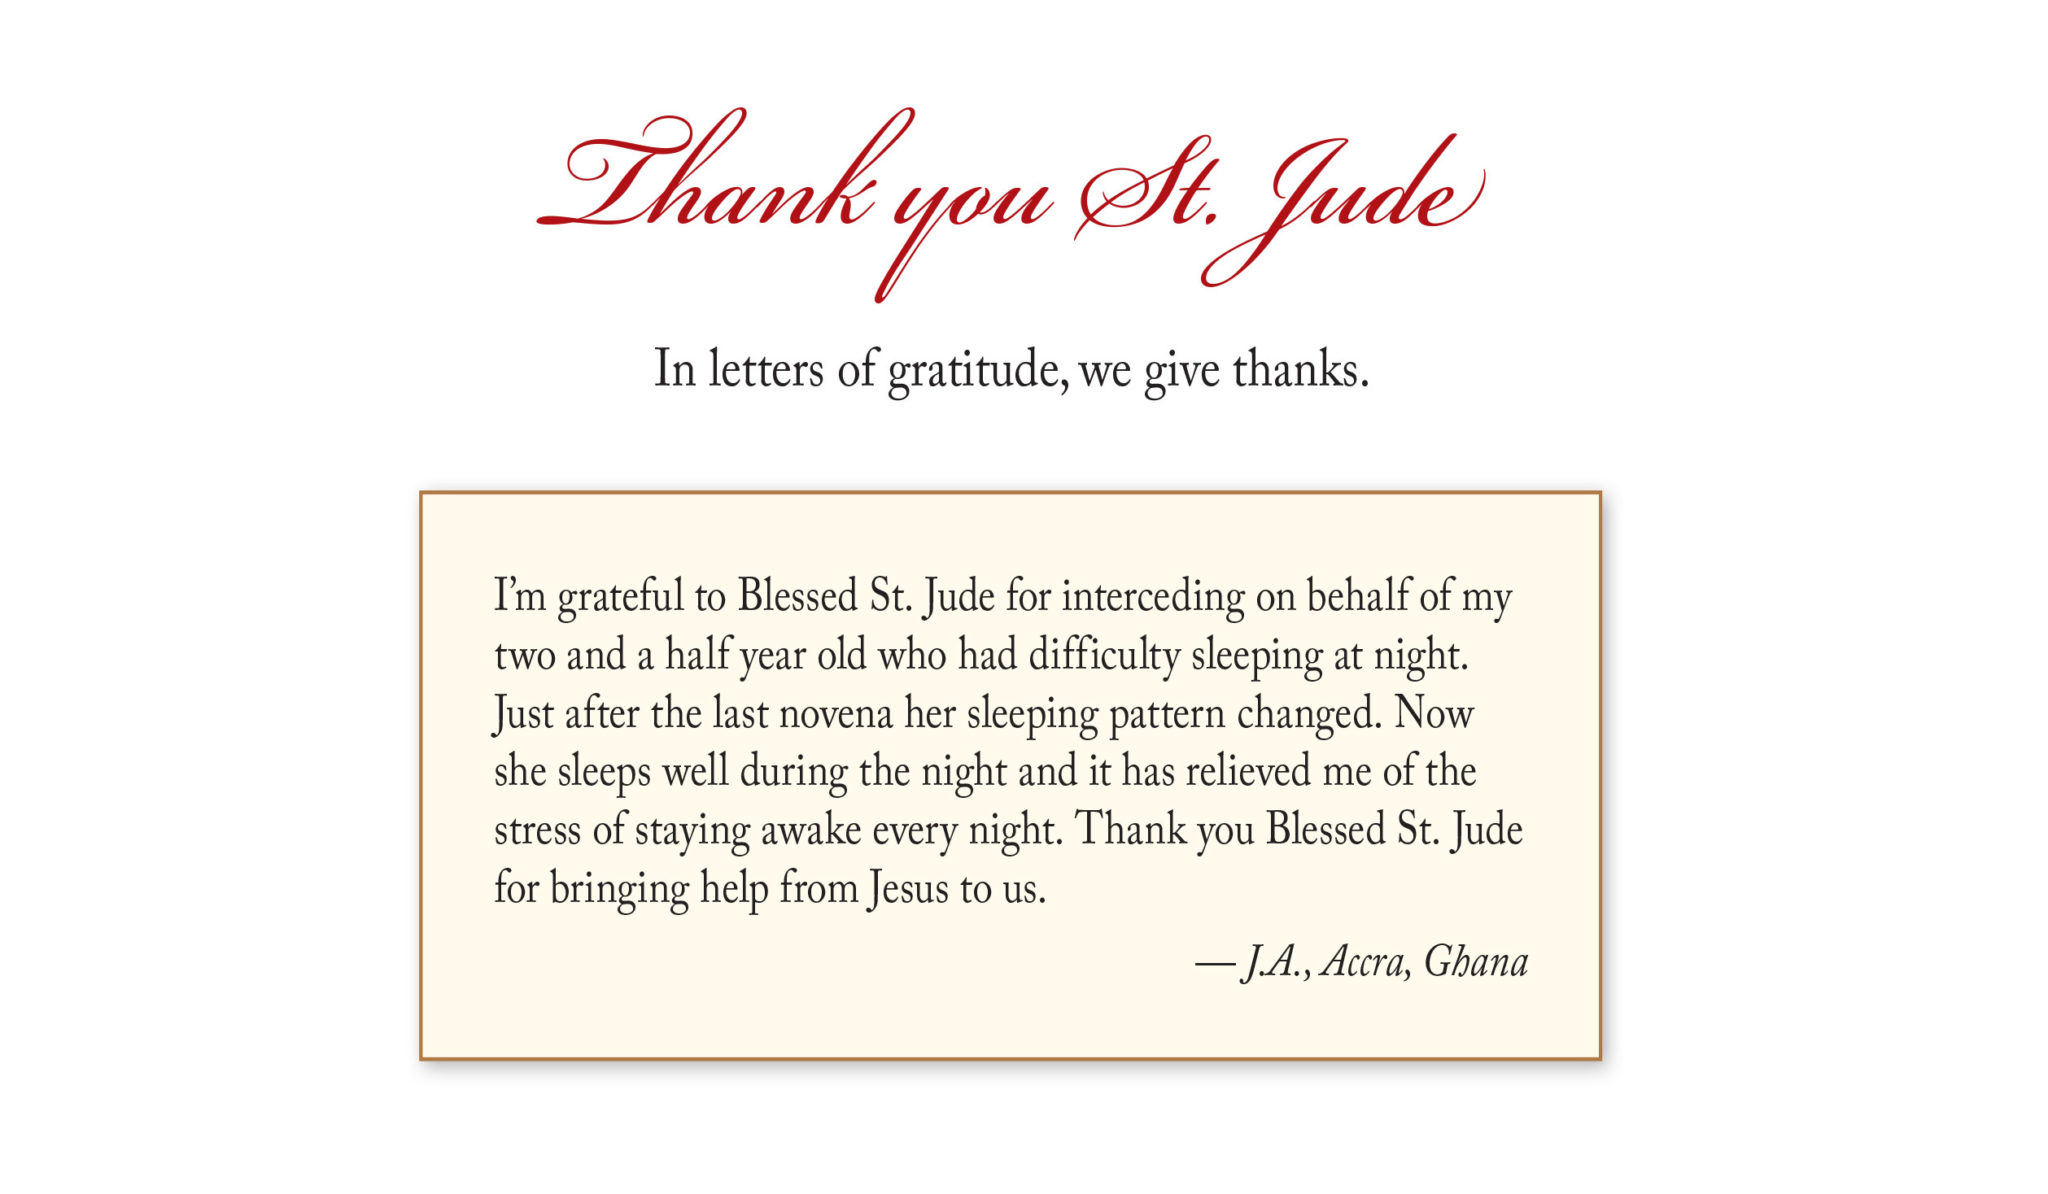 Letters of Gratitude July 2020 _1